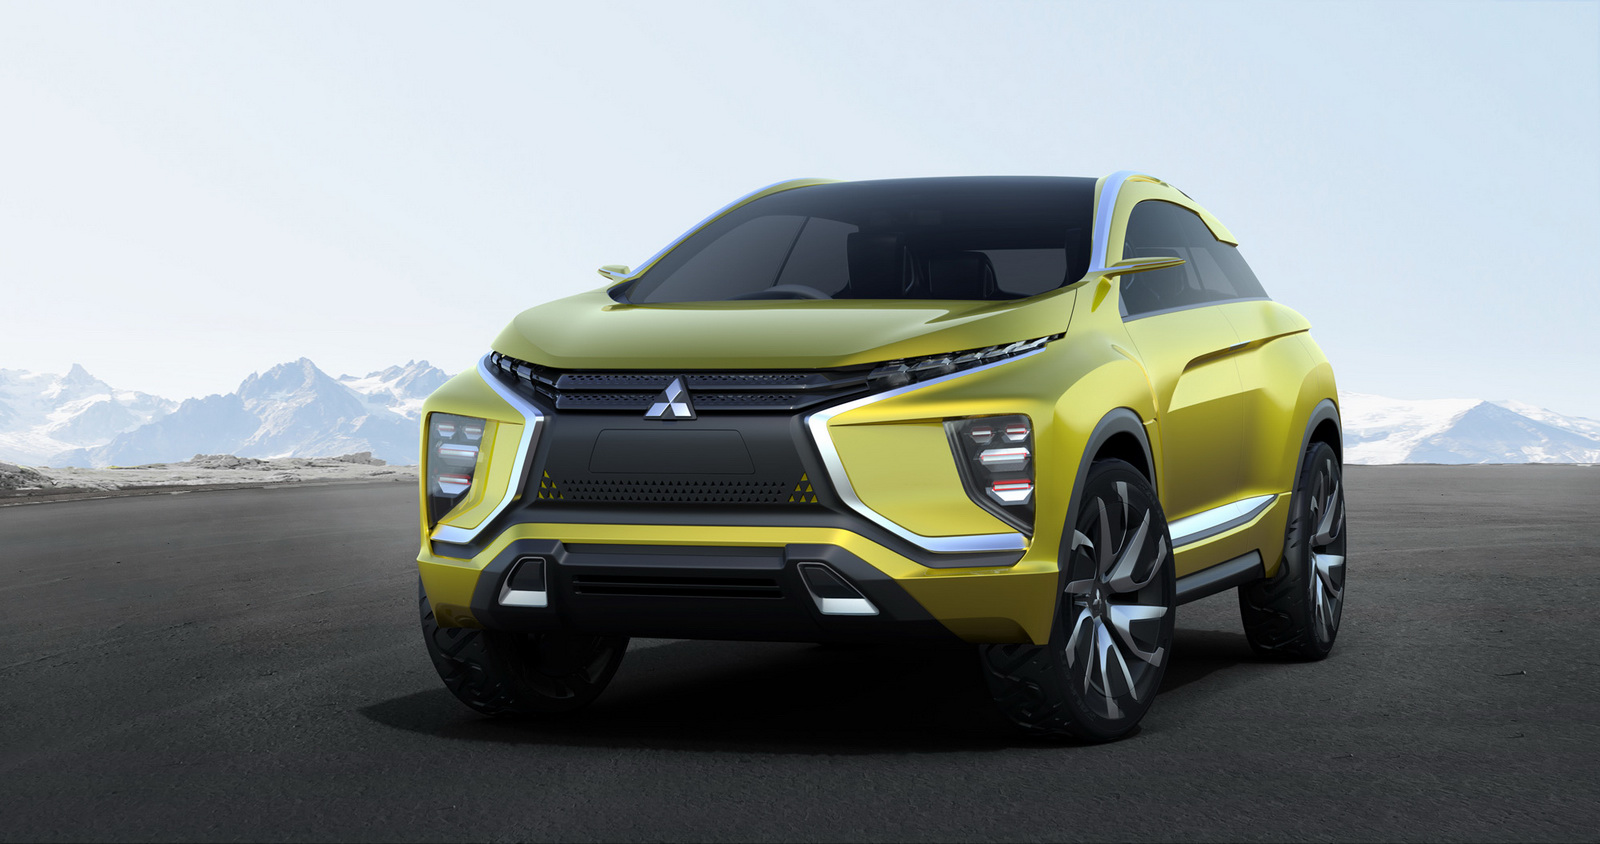 Mitsubishi Confirms Two Suv Concepts For Paris Auto Show